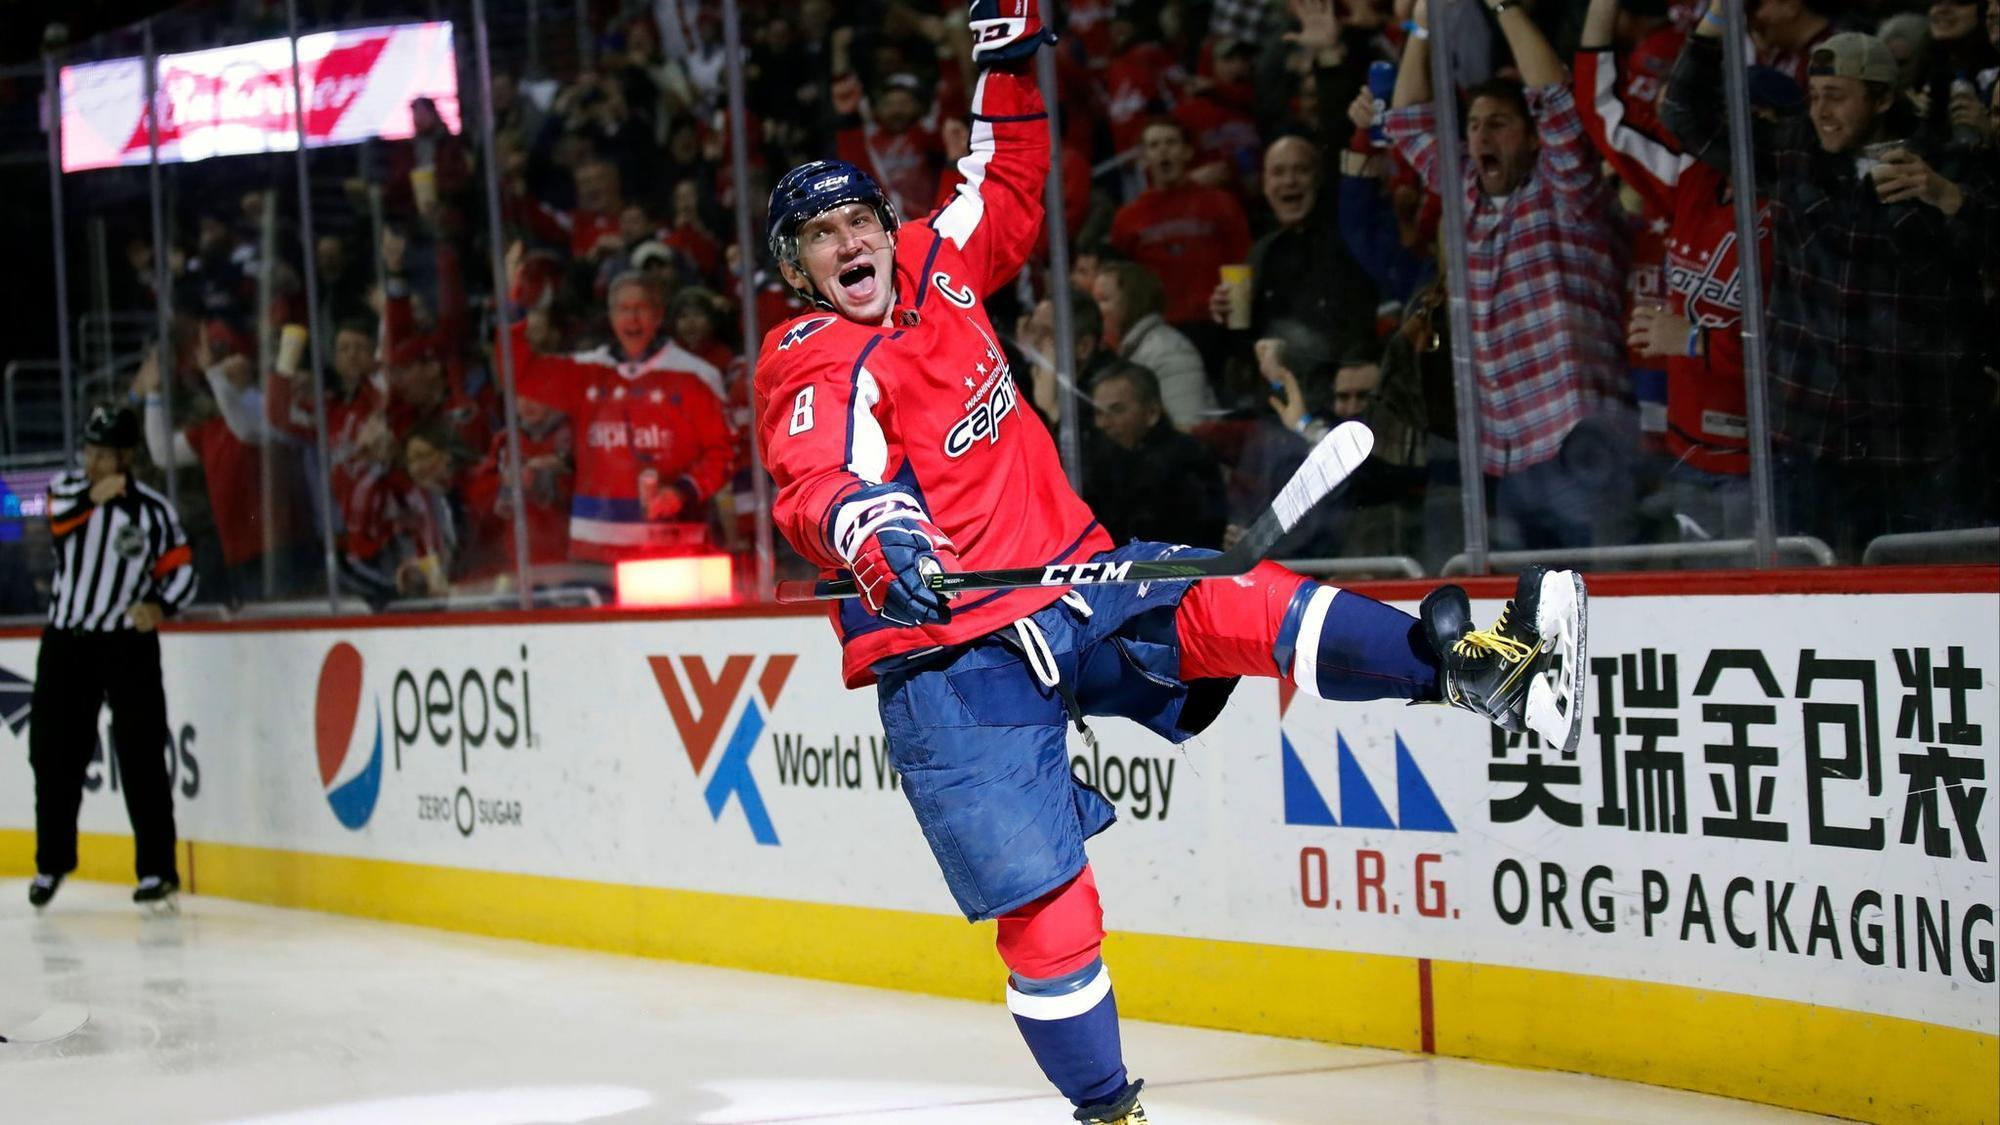 Alexander Ovechkin Notches 600th Career Goal